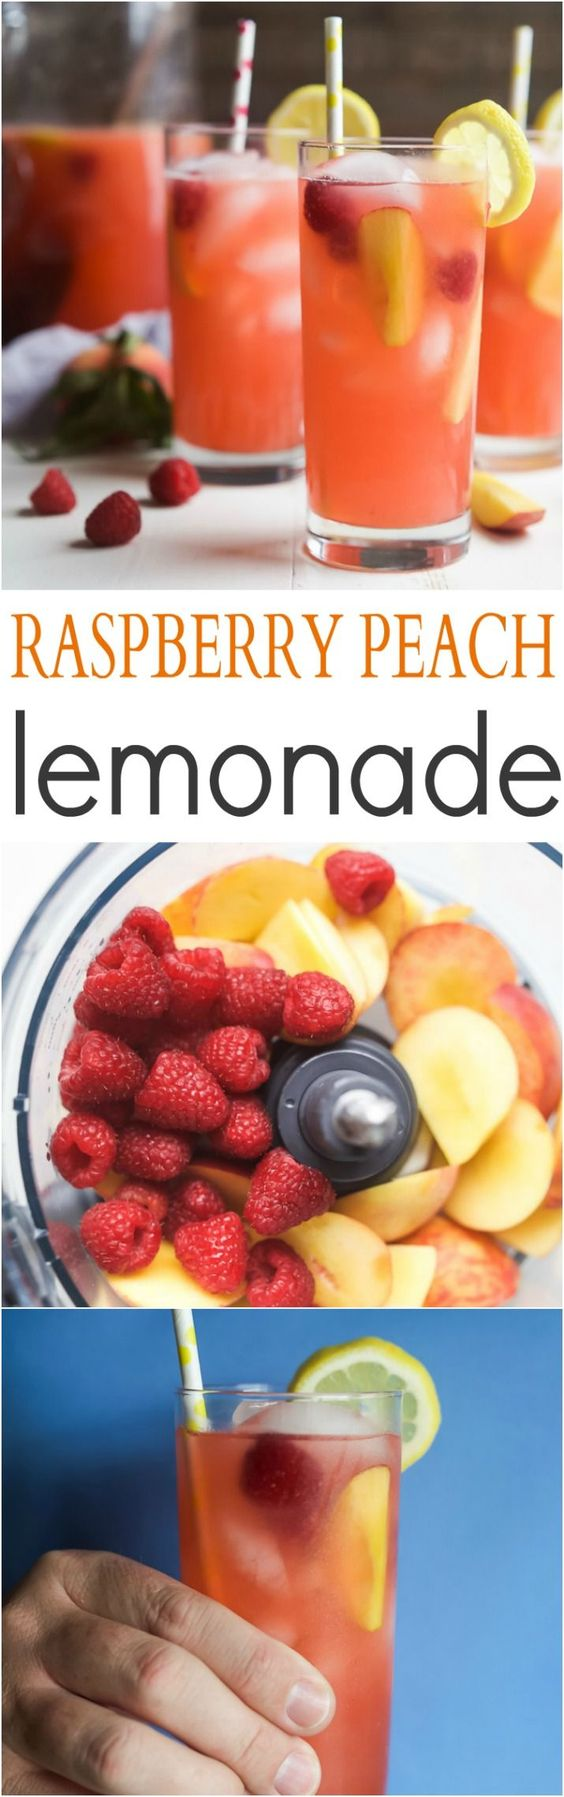 Homemade Raspberry Peach Lemonade Recipe made with fresh raspberries ...